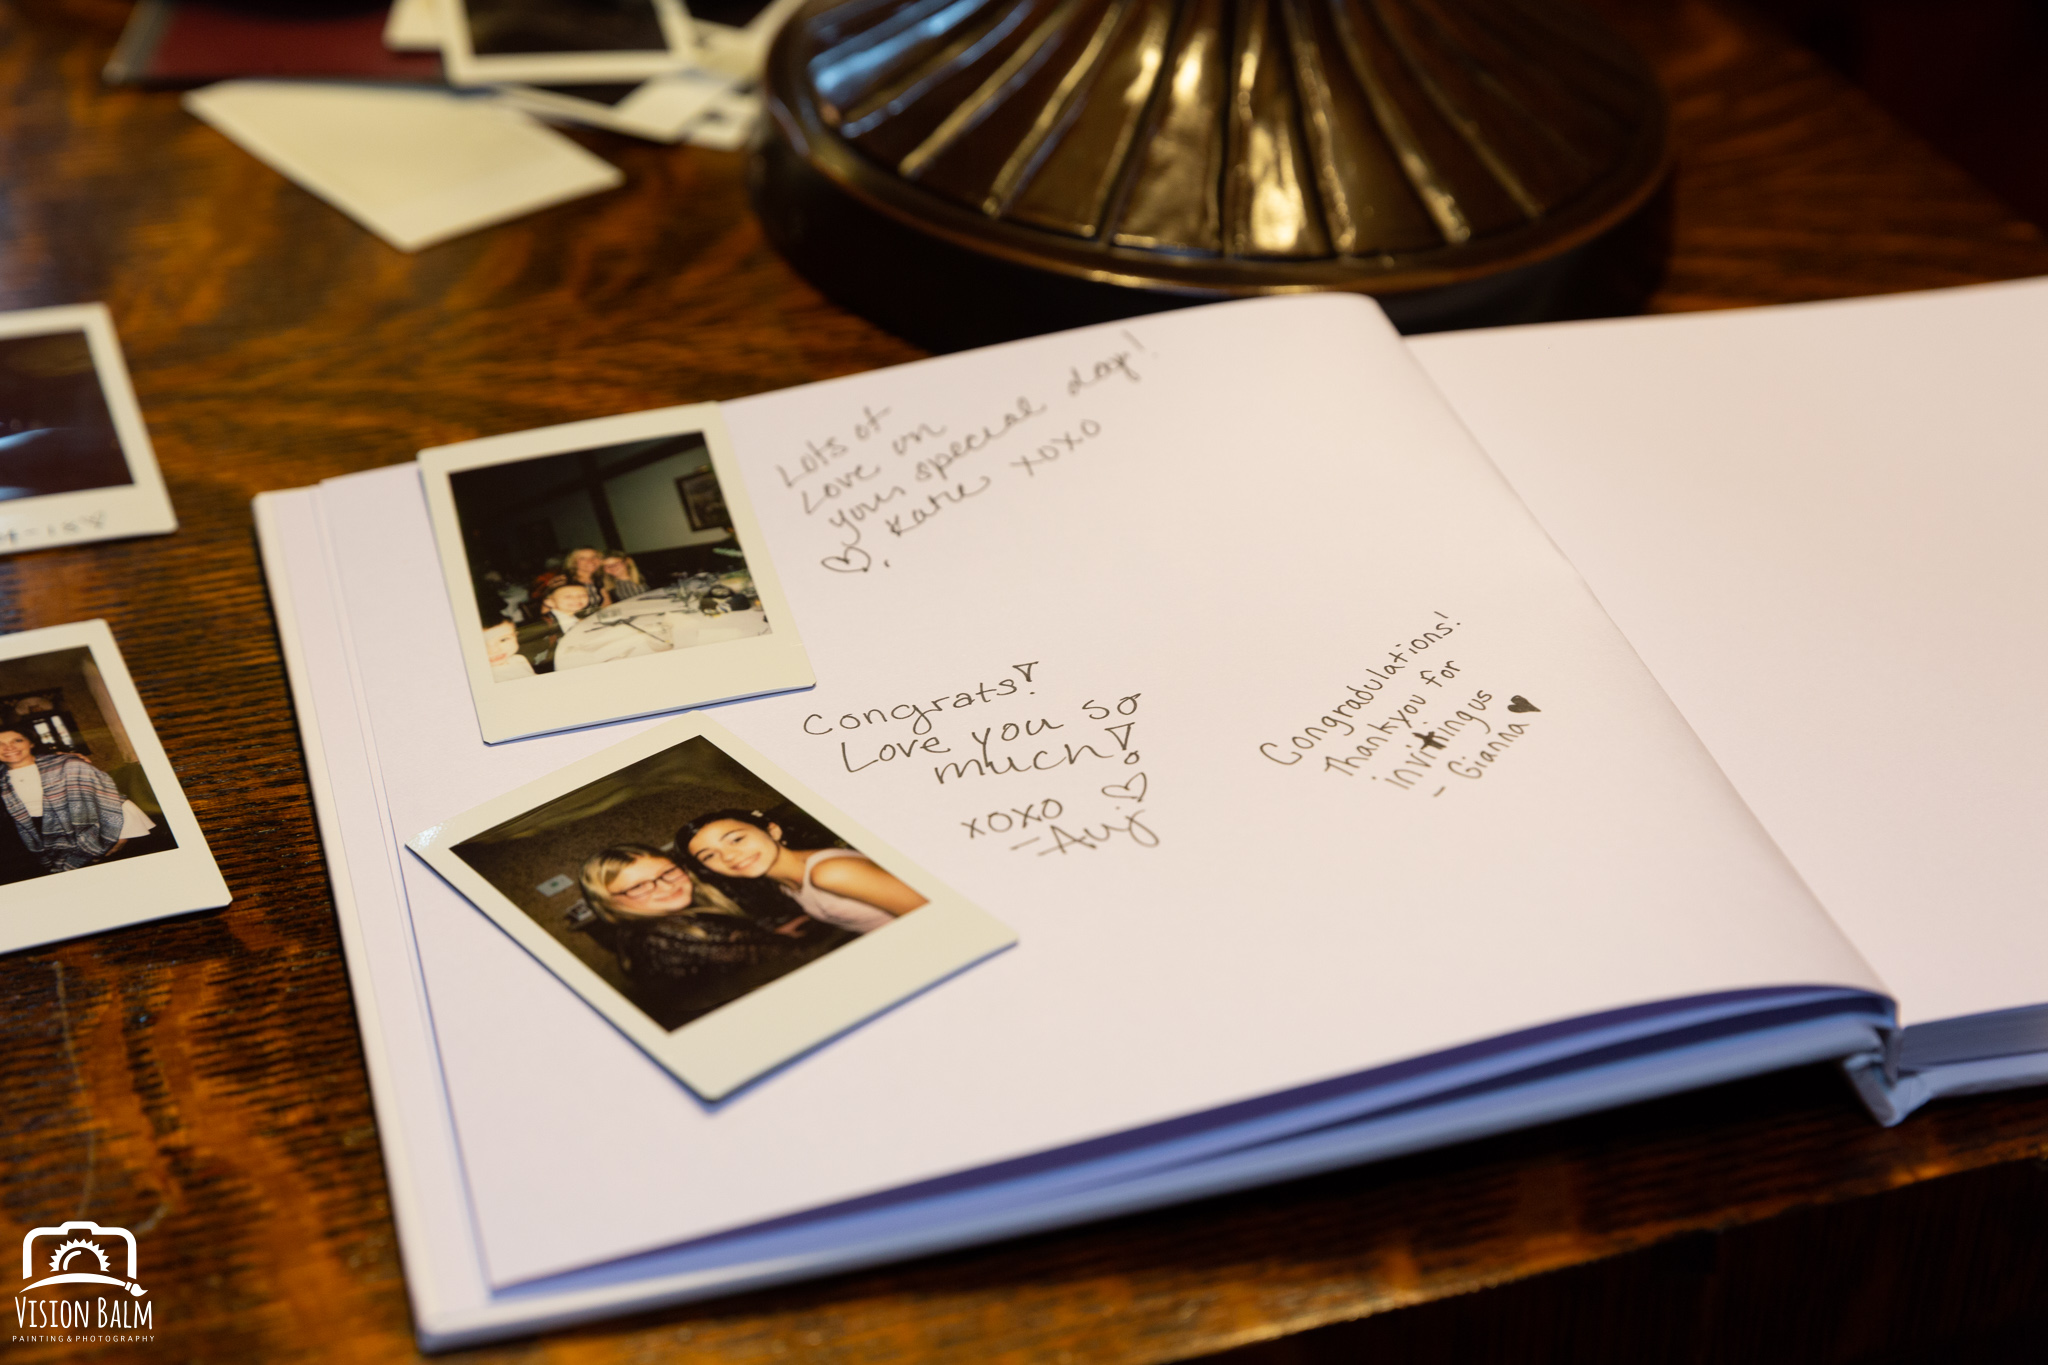 Wedding details photo of a book with photos in the venue of Zuka's Hilltop Barn by Vision Balm in Charleston, SC.